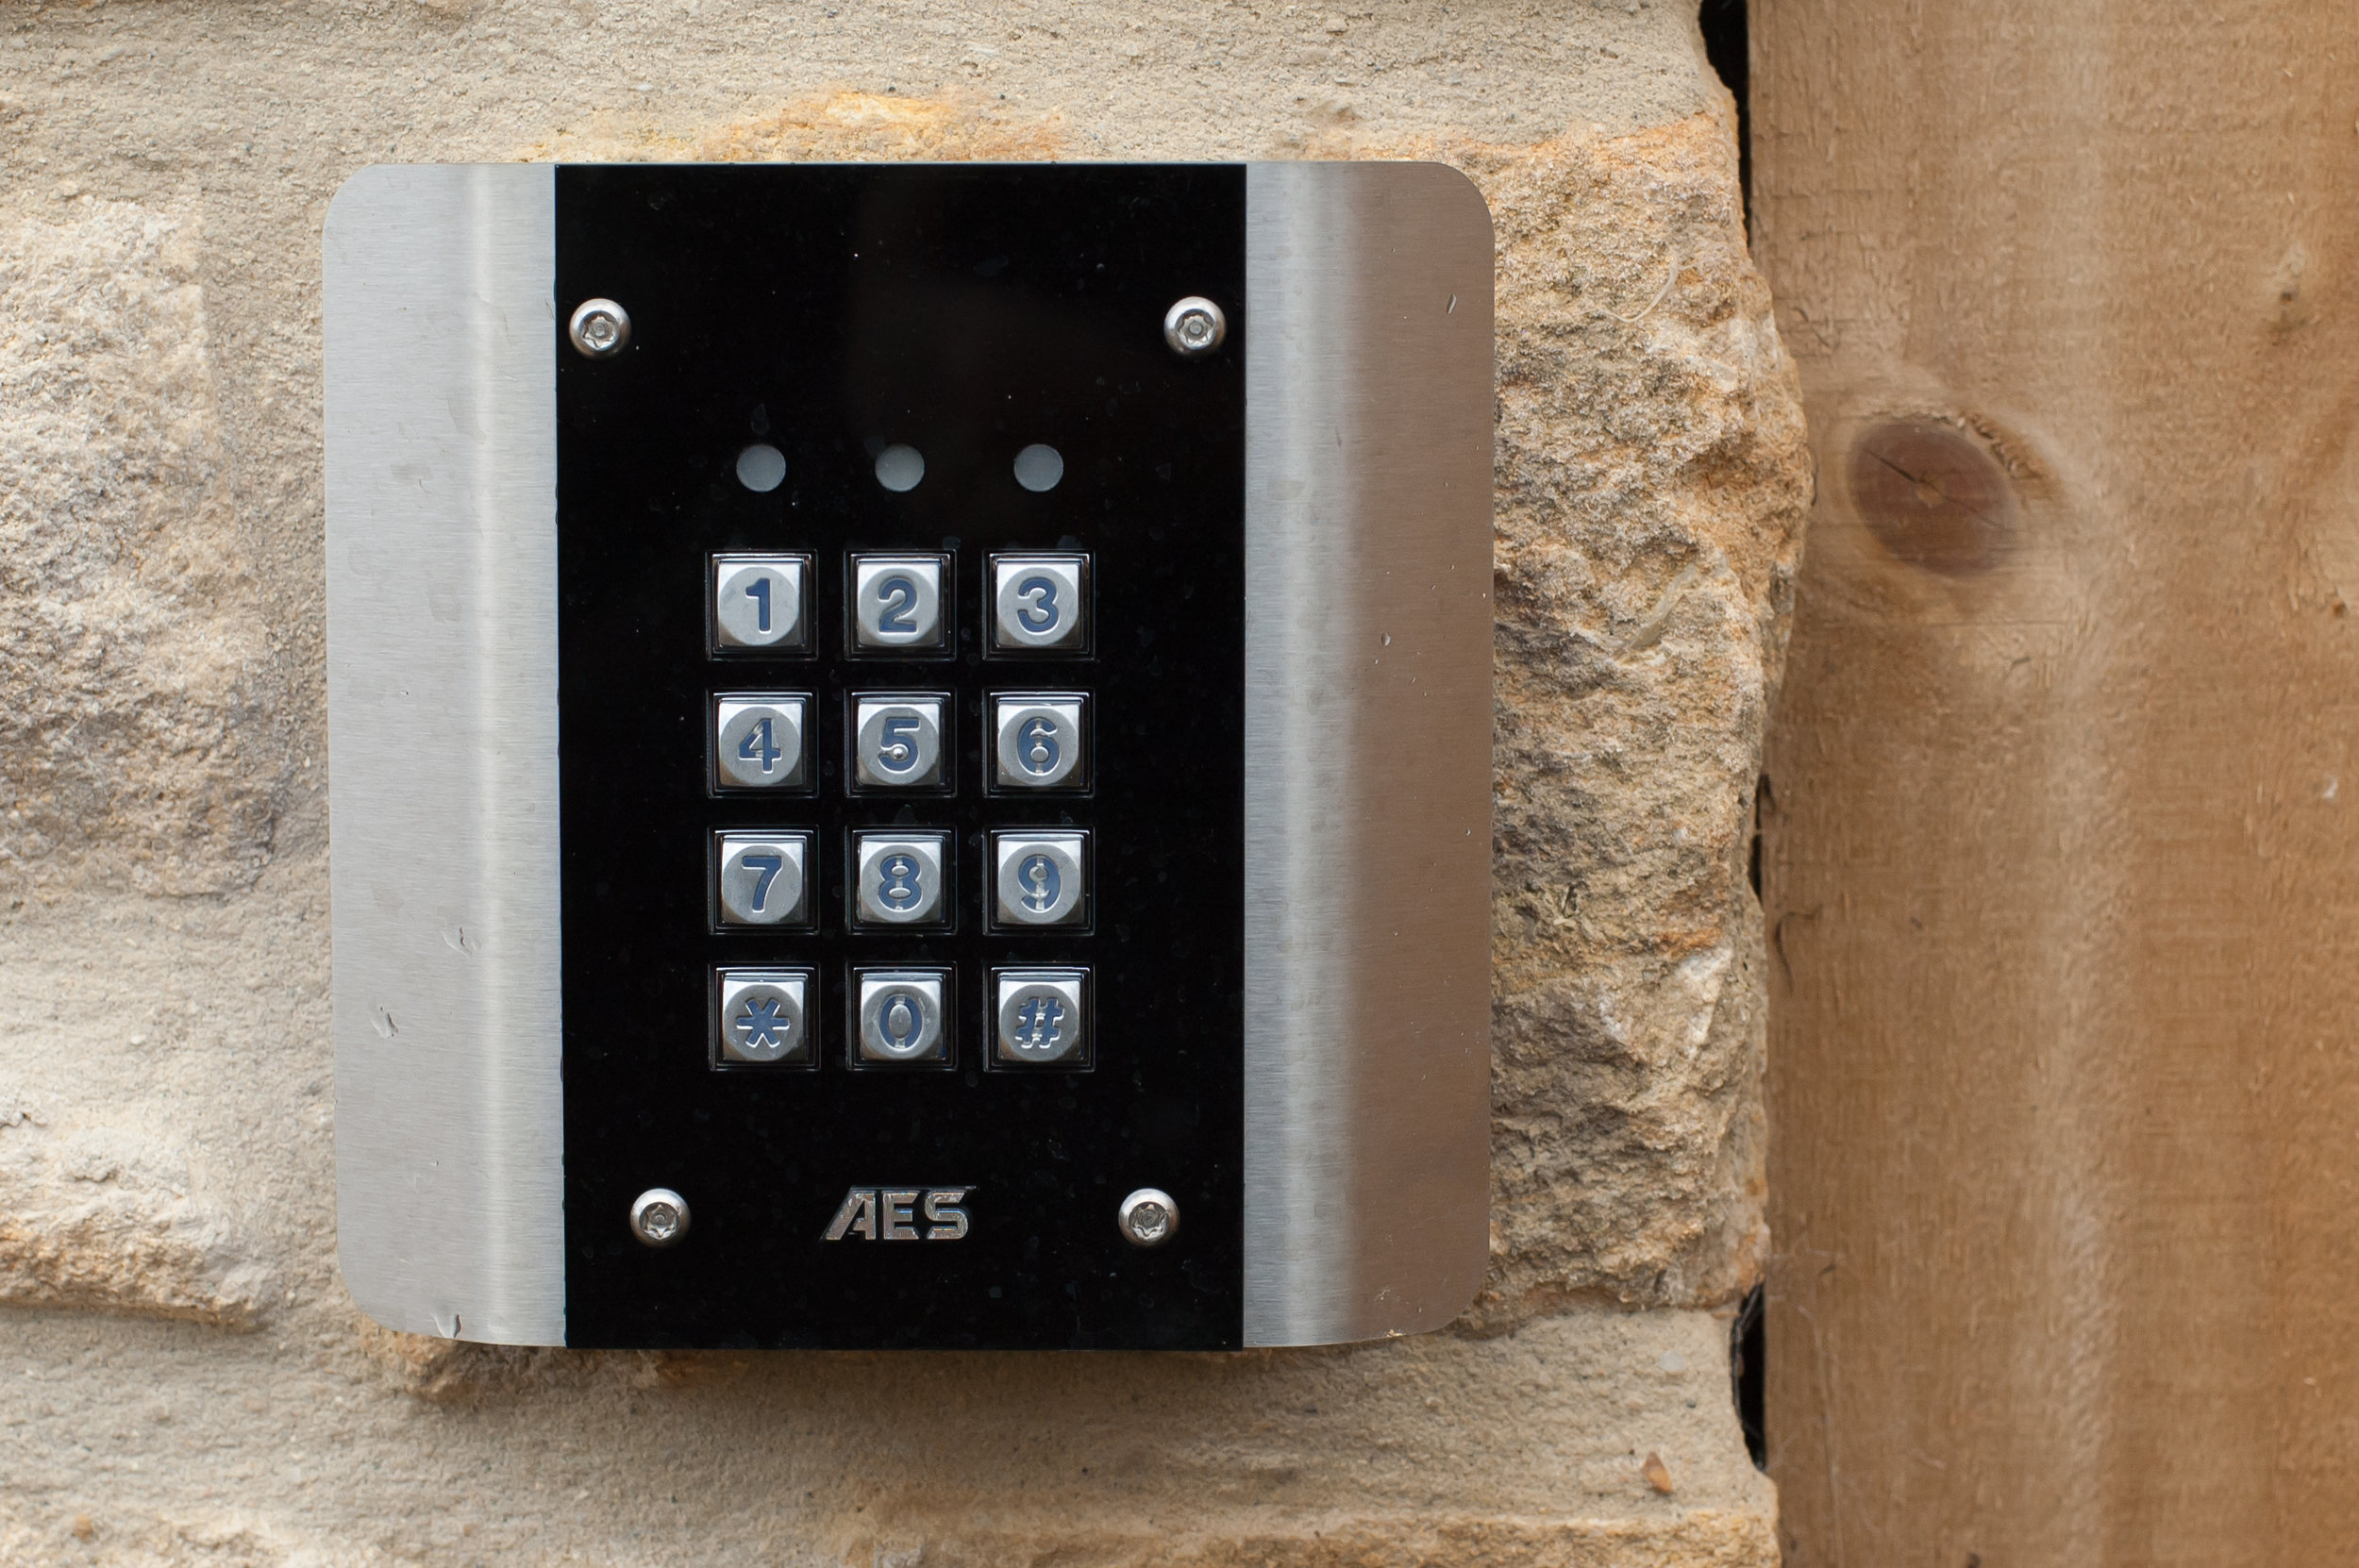 Access control and security - Keypads, intercoms (wireless GSM or hard-wired), proximity fob systems.  Network-managed, push button or magnetic locks.